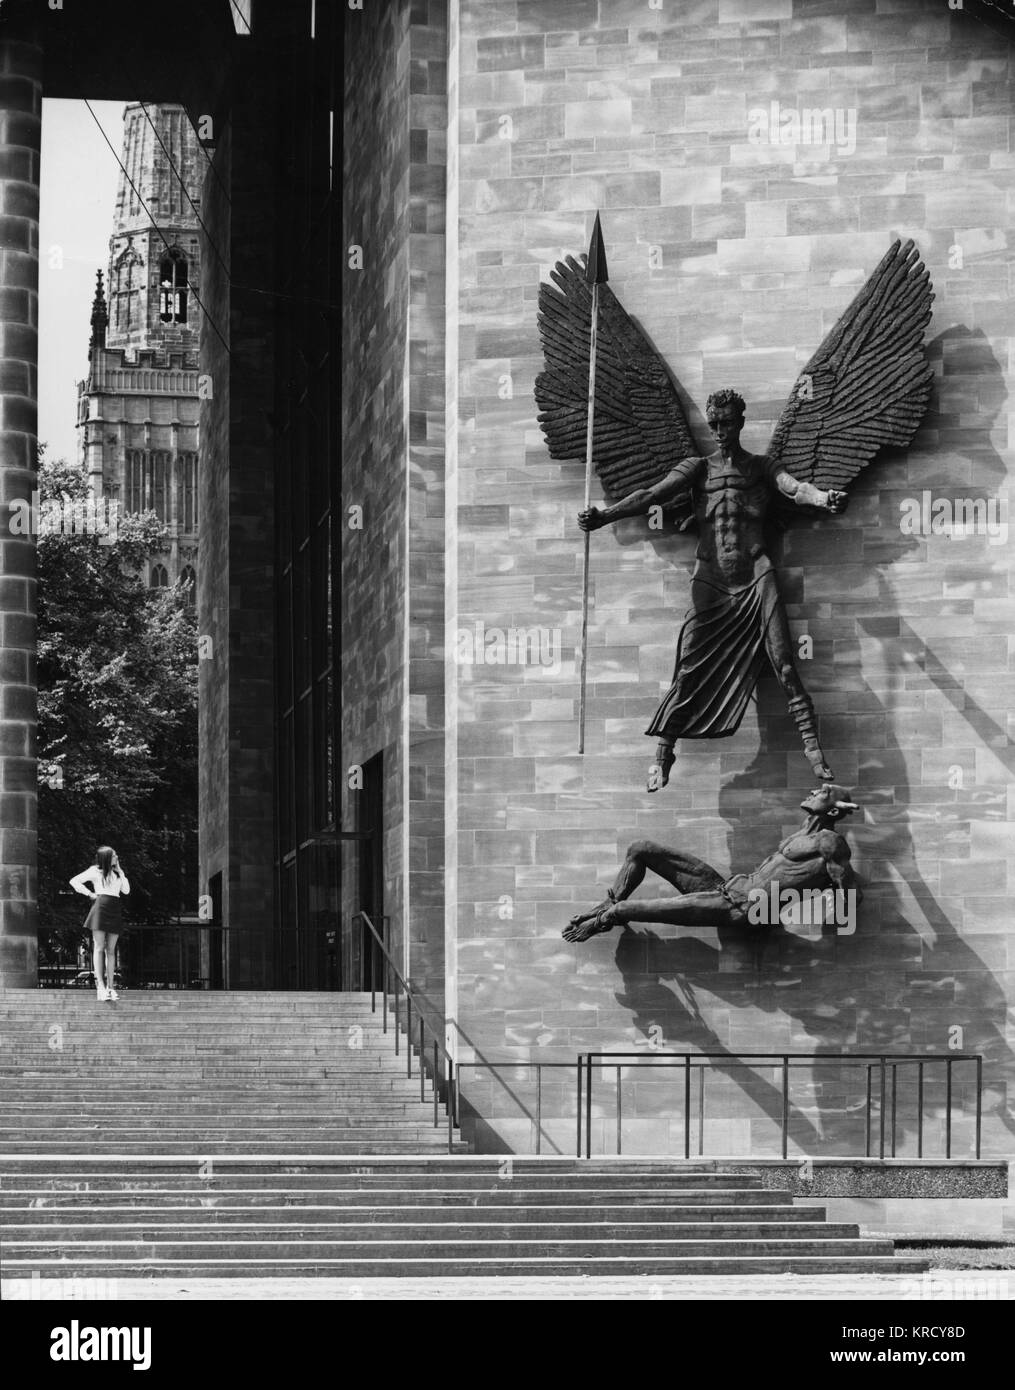 The enormous (6 metres high) sculpture of St. Michael defeating the Devil (Lucifer) sculpted (1958) by Sir Jacob - Stock Image